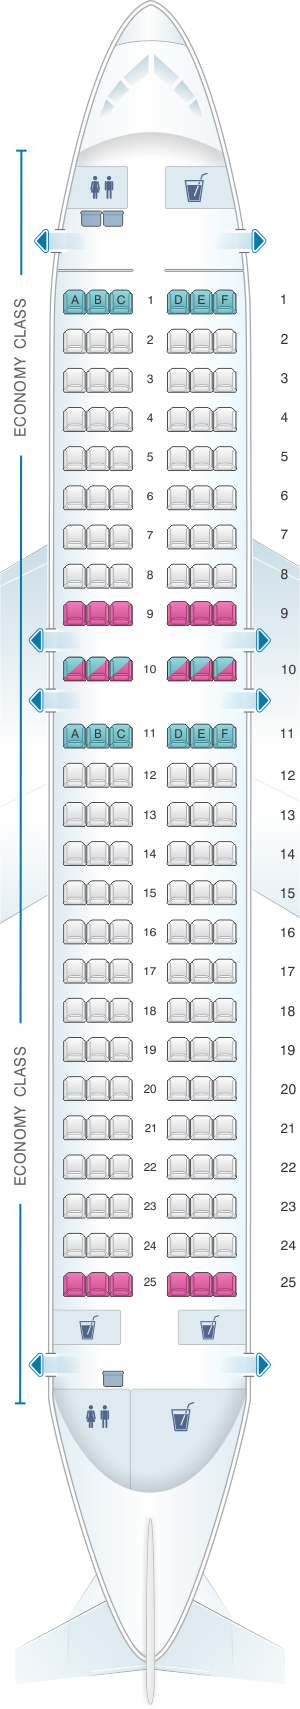 Seat map for airberlin Airbus A319 112